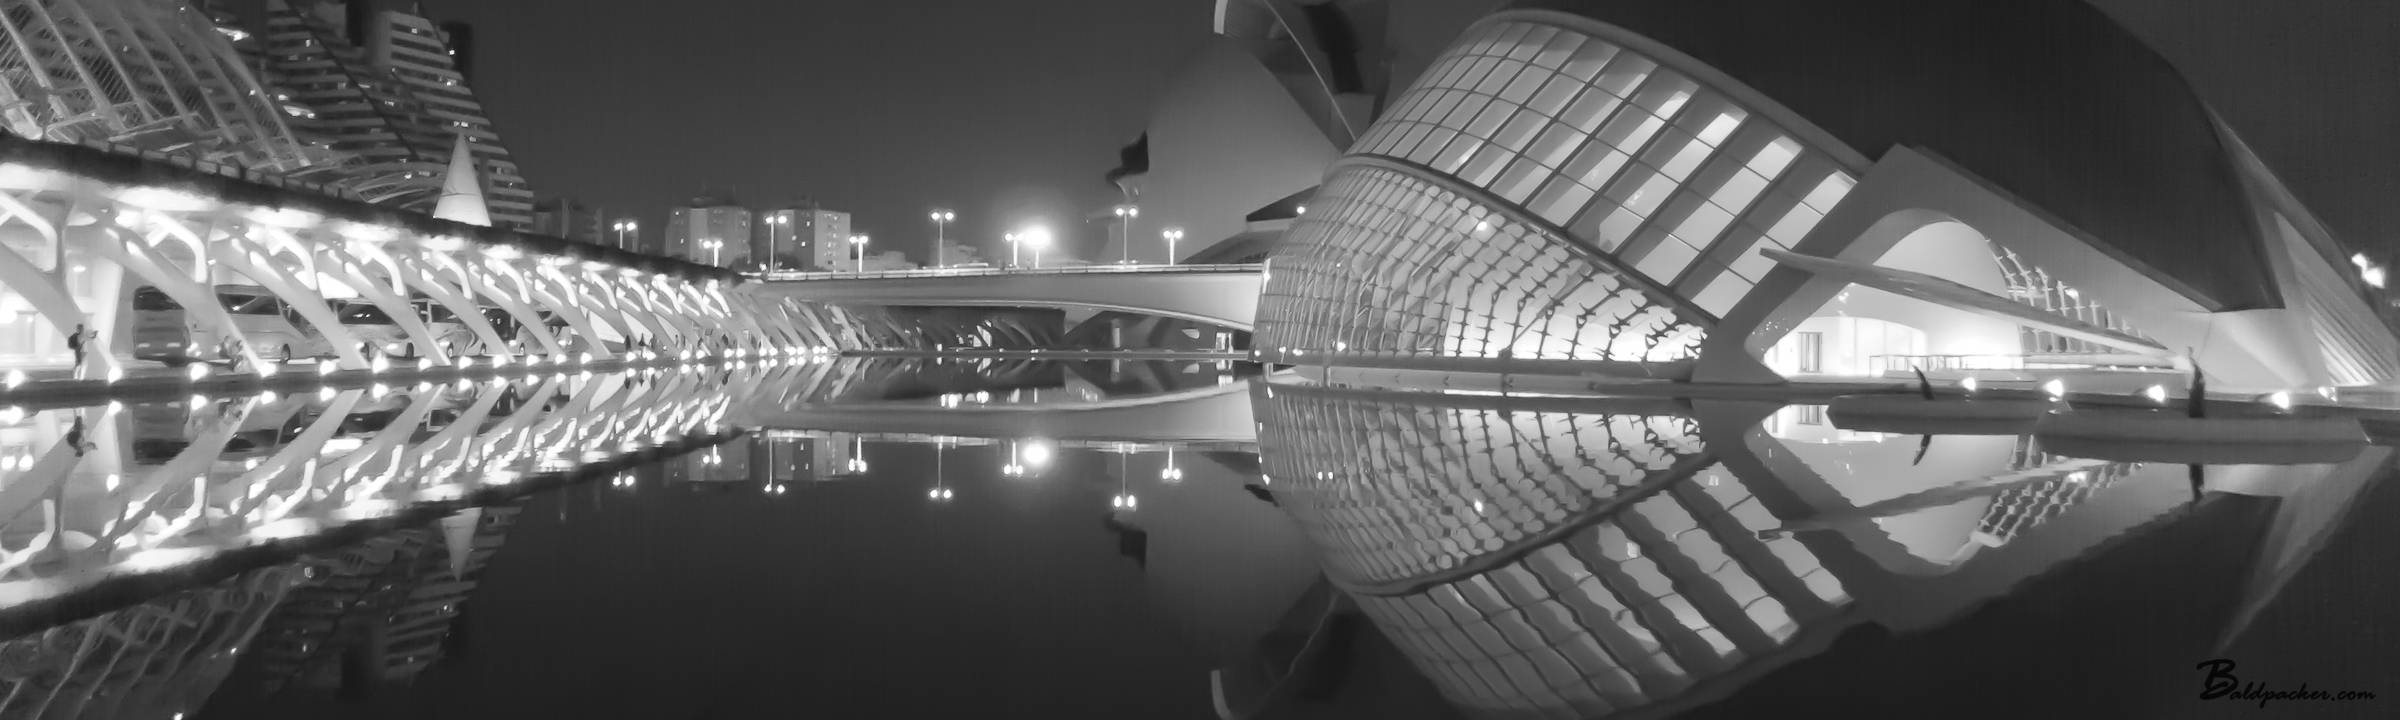 Valencia, Spain: Arts, Science, and Architecture